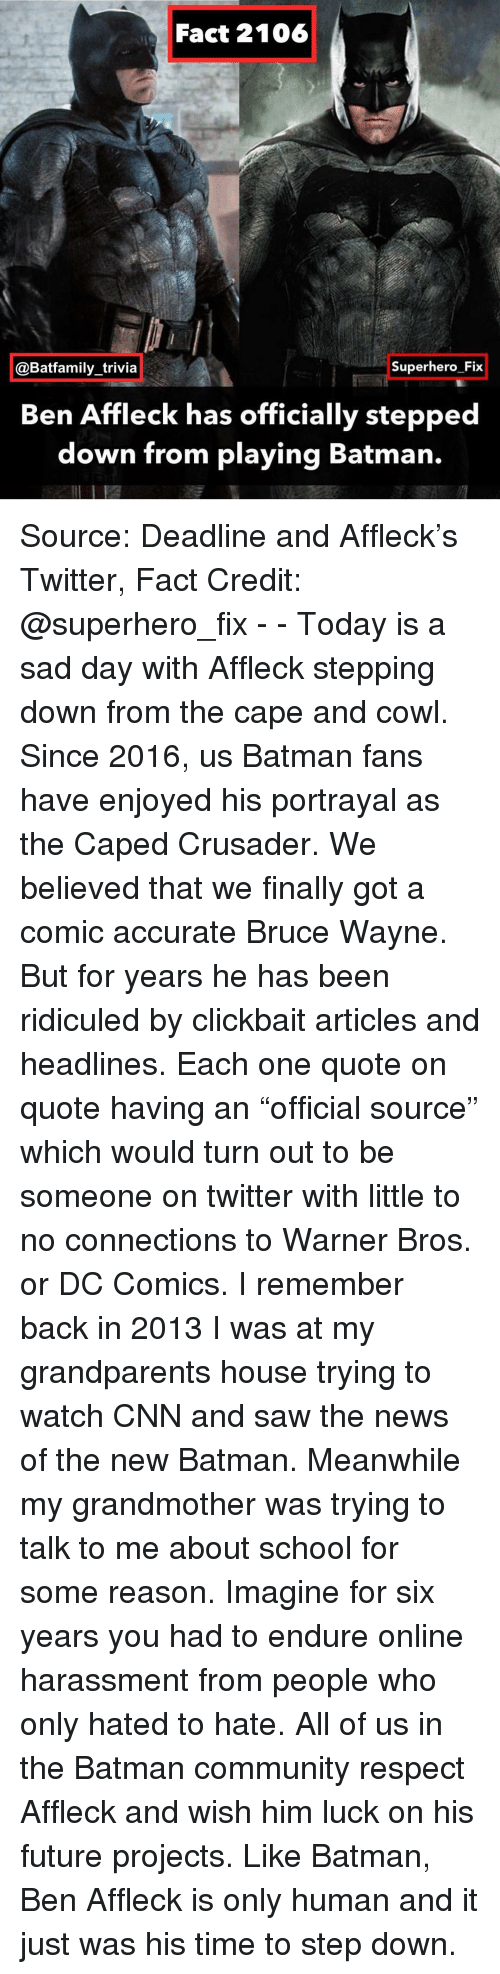 """Warner Bros.: Fact 2106  @Batfamily_trivia  Superhero Fix  Ben Affleck has officially stepped  down from playing Batman. Source: Deadline and Affleck's Twitter, Fact Credit: @superhero_fix - - Today is a sad day with Affleck stepping down from the cape and cowl. Since 2016, us Batman fans have enjoyed his portrayal as the Caped Crusader. We believed that we finally got a comic accurate Bruce Wayne. But for years he has been ridiculed by clickbait articles and headlines. Each one quote on quote having an """"official source"""" which would turn out to be someone on twitter with little to no connections to Warner Bros. or DC Comics. I remember back in 2013 I was at my grandparents house trying to watch CNN and saw the news of the new Batman. Meanwhile my grandmother was trying to talk to me about school for some reason. Imagine for six years you had to endure online harassment from people who only hated to hate. All of us in the Batman community respect Affleck and wish him luck on his future projects. Like Batman, Ben Affleck is only human and it just was his time to step down."""